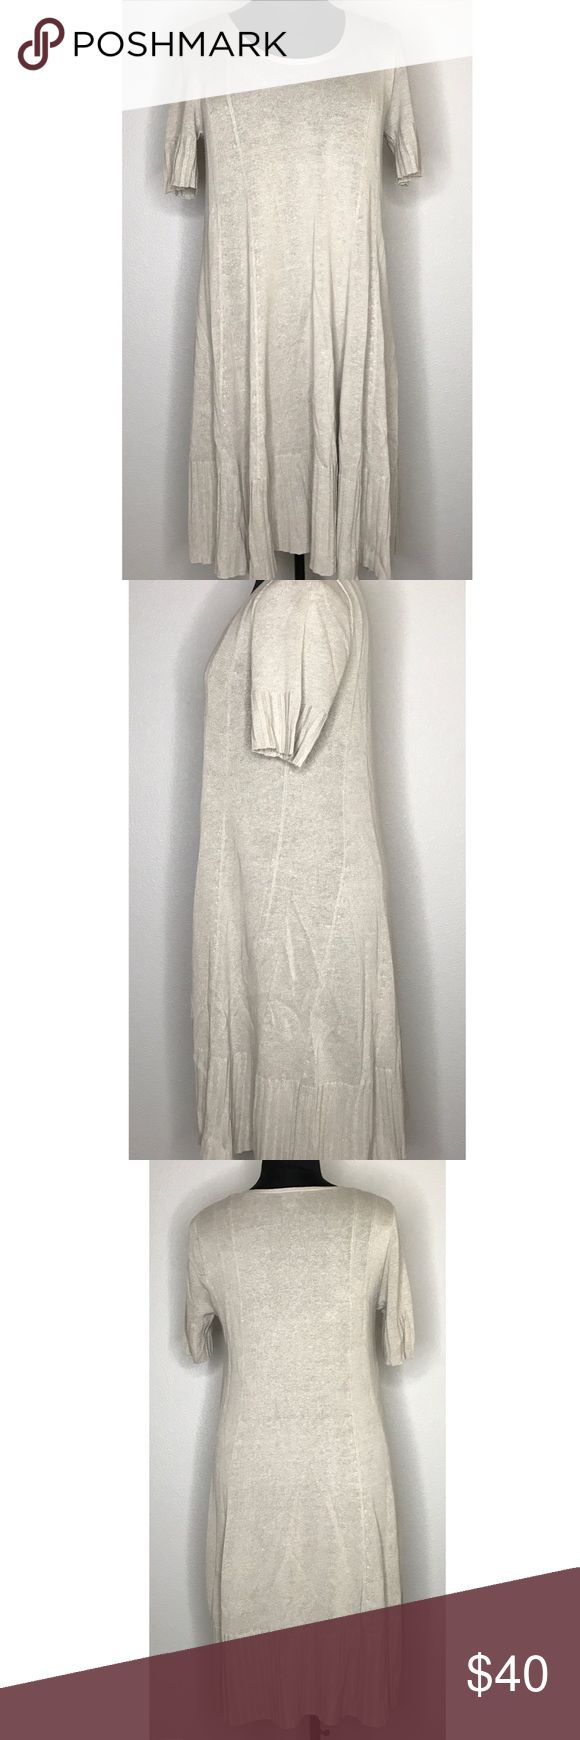 Petite Sweater Dress Lightweight sweater dress is perfect for fall layering! Beautiful cream color with a subtle piping effect. EUC. J. Jill Dresses